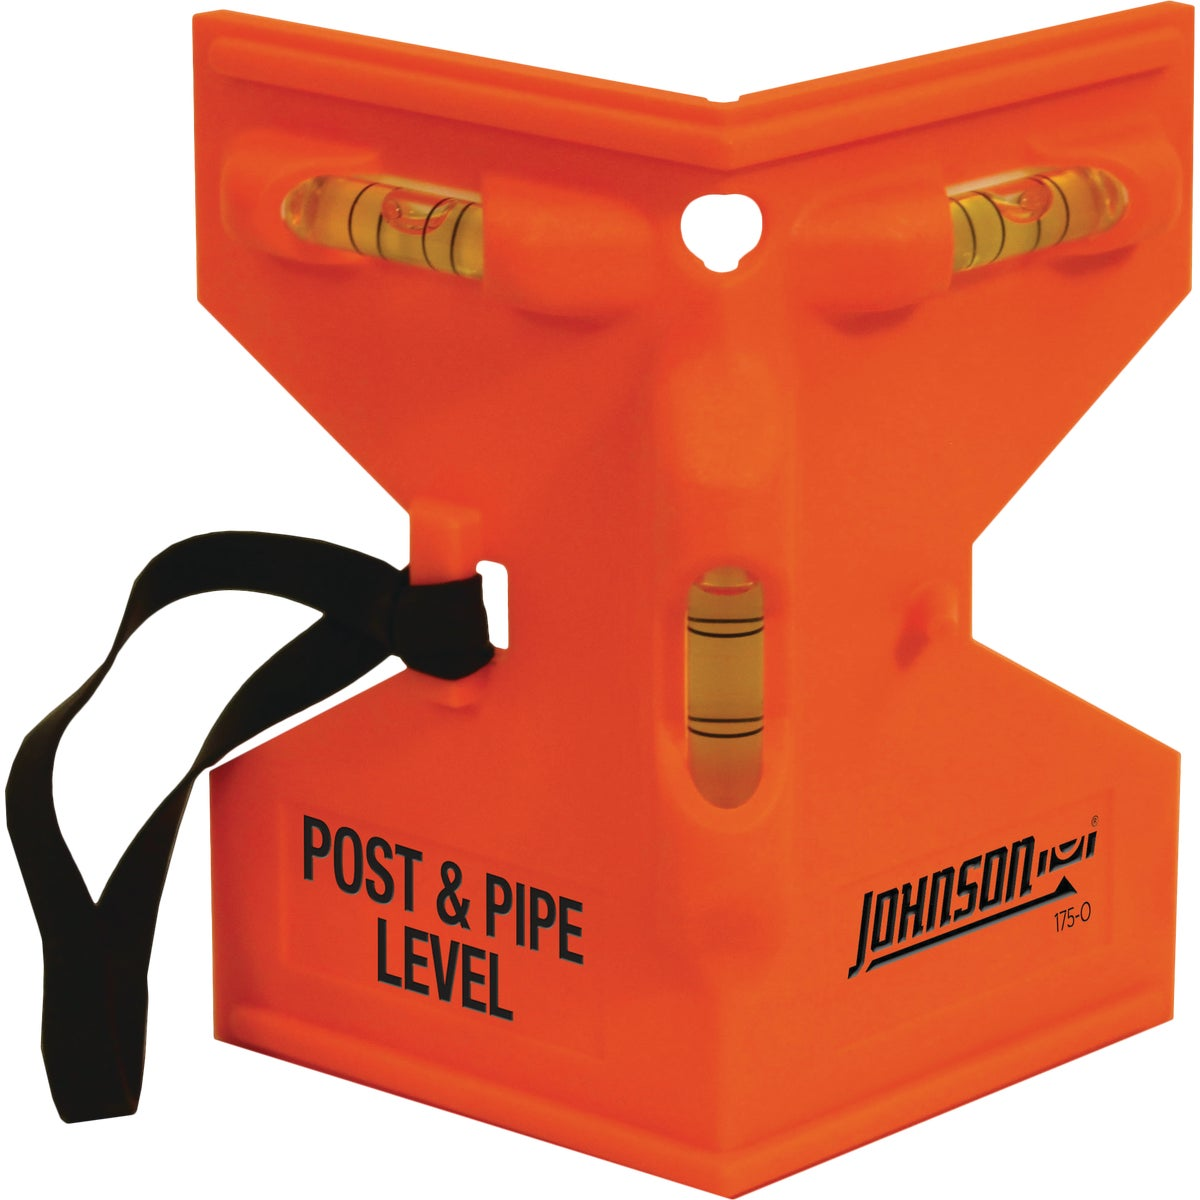 ORANGE POST LEVEL - 175-O by Johnson Level & Tool